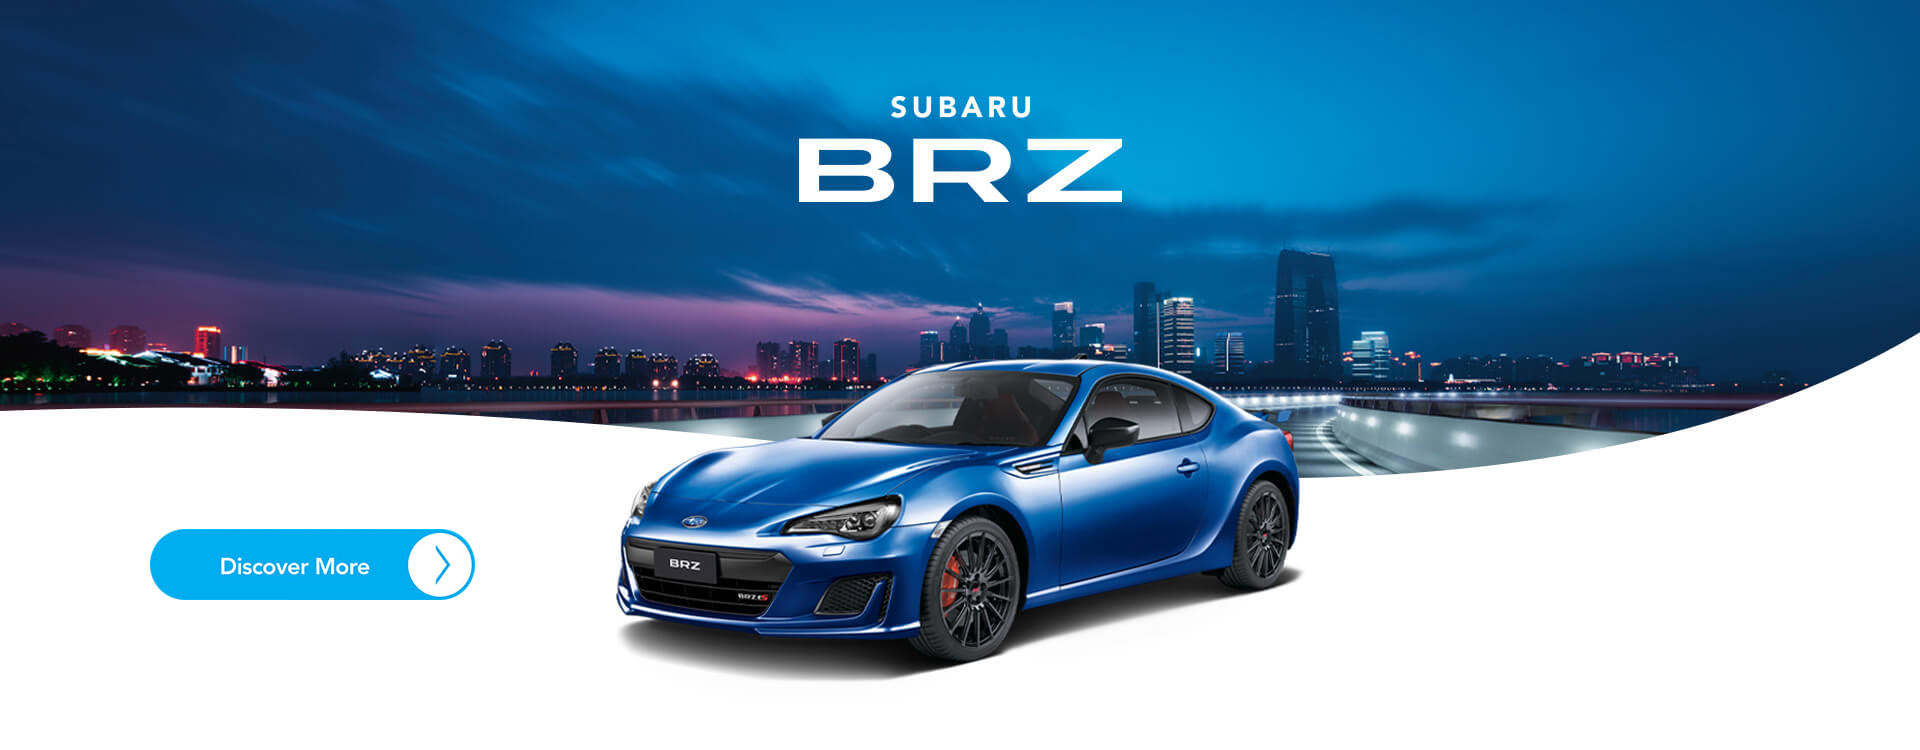 New MY20 Subaru BRZ now available at Cricks Tweed Subaru, Tweed Heads. Test Drive Today!